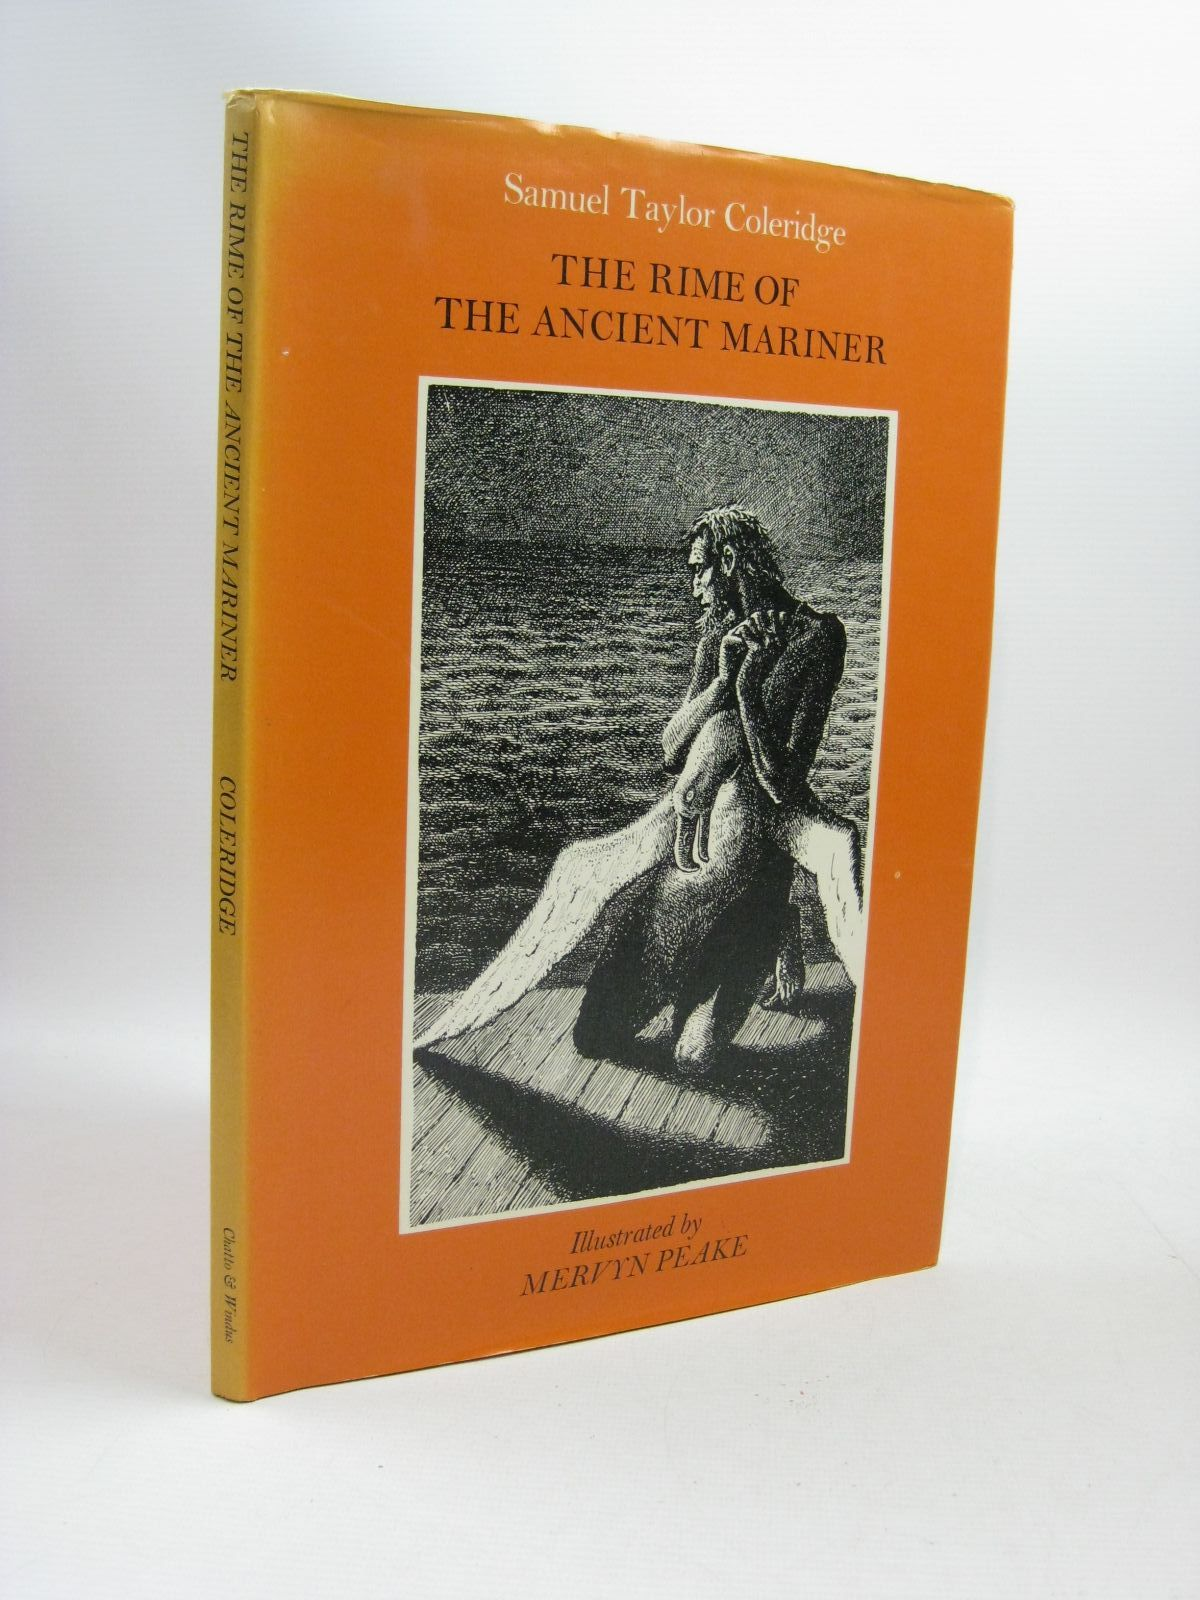 Part I: The Rime of the Ancient Mariner By S.T. Coleridge